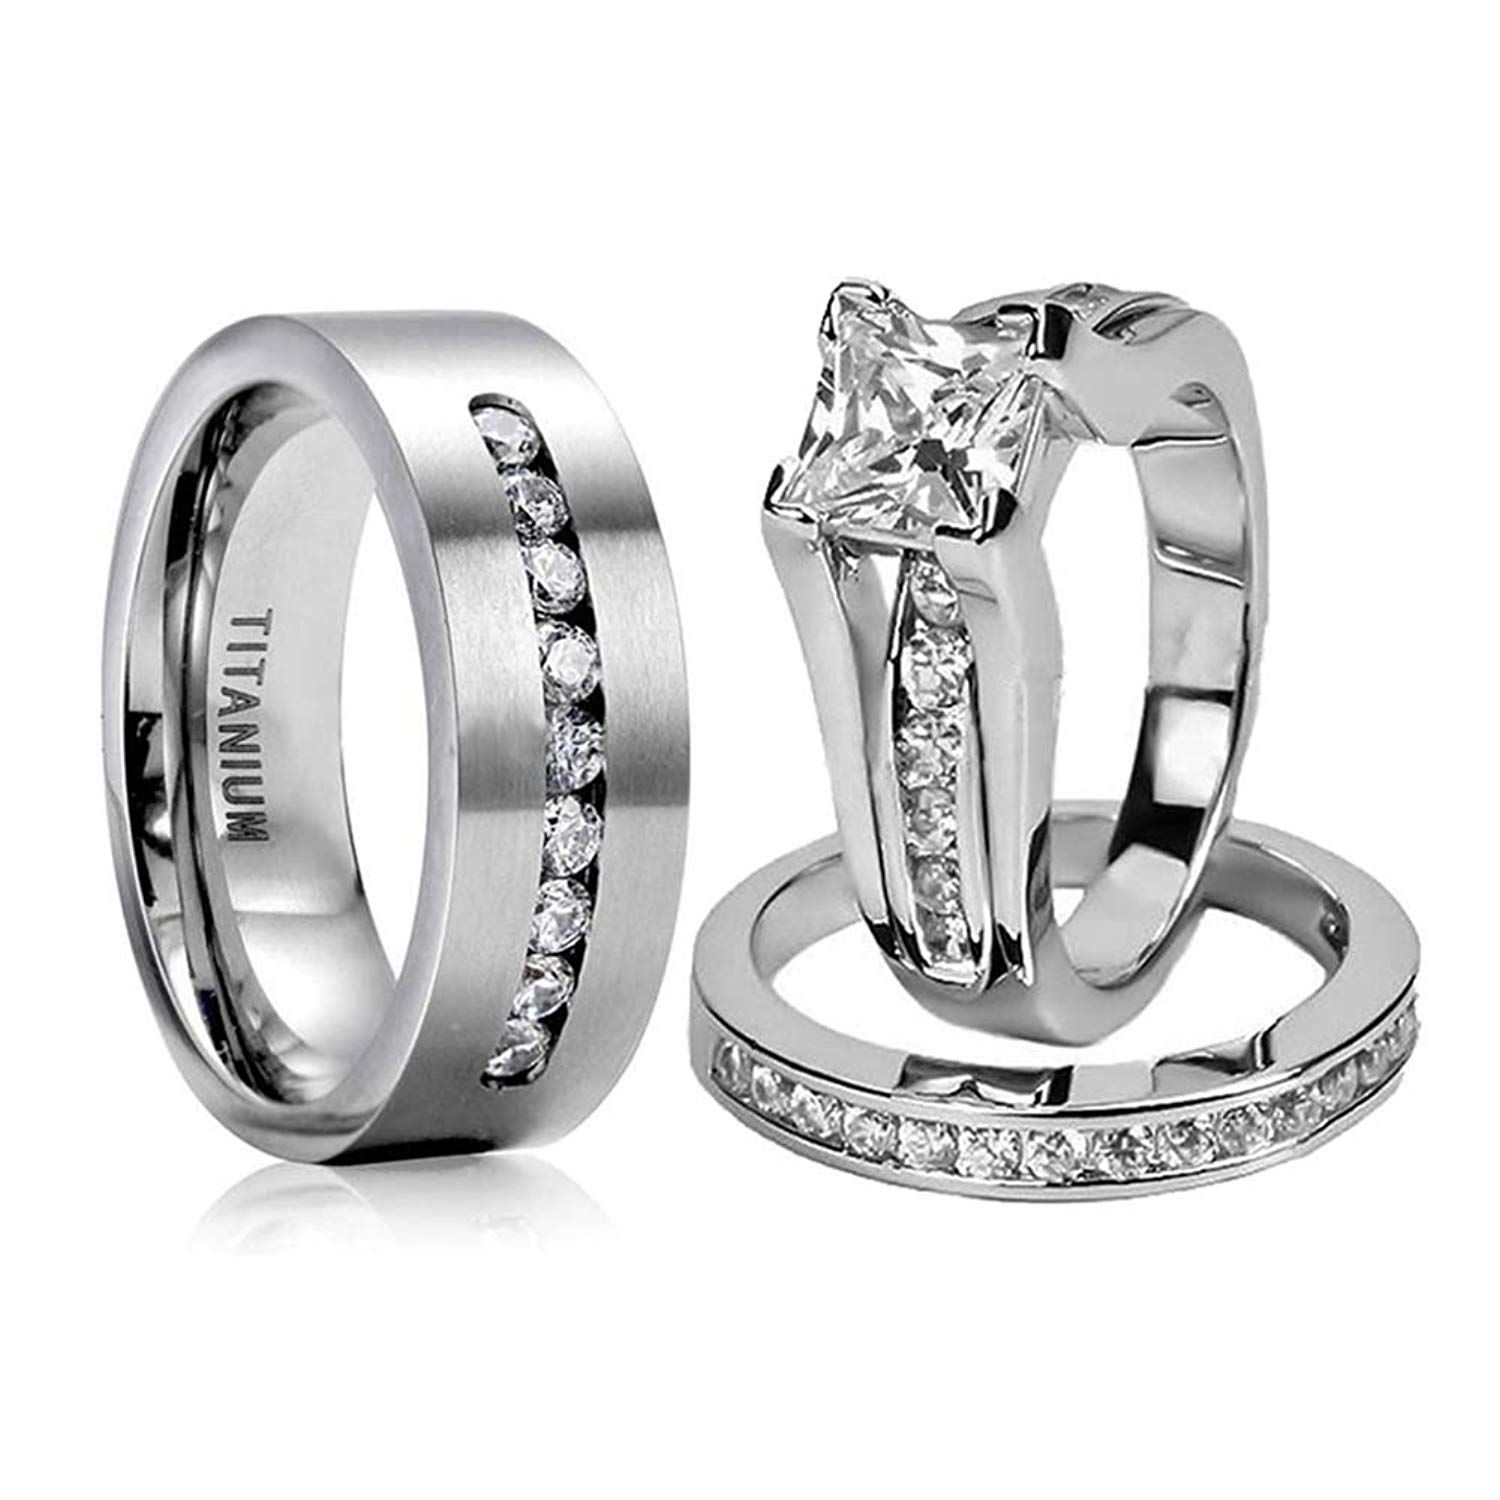 Loversring Couple Ring Bridal Set His Hers Women White Gold Plated Cz Men Titanium Wedding R Unique Diamond Rings Womens Wedding Ring Sets Couple Wedding Rings